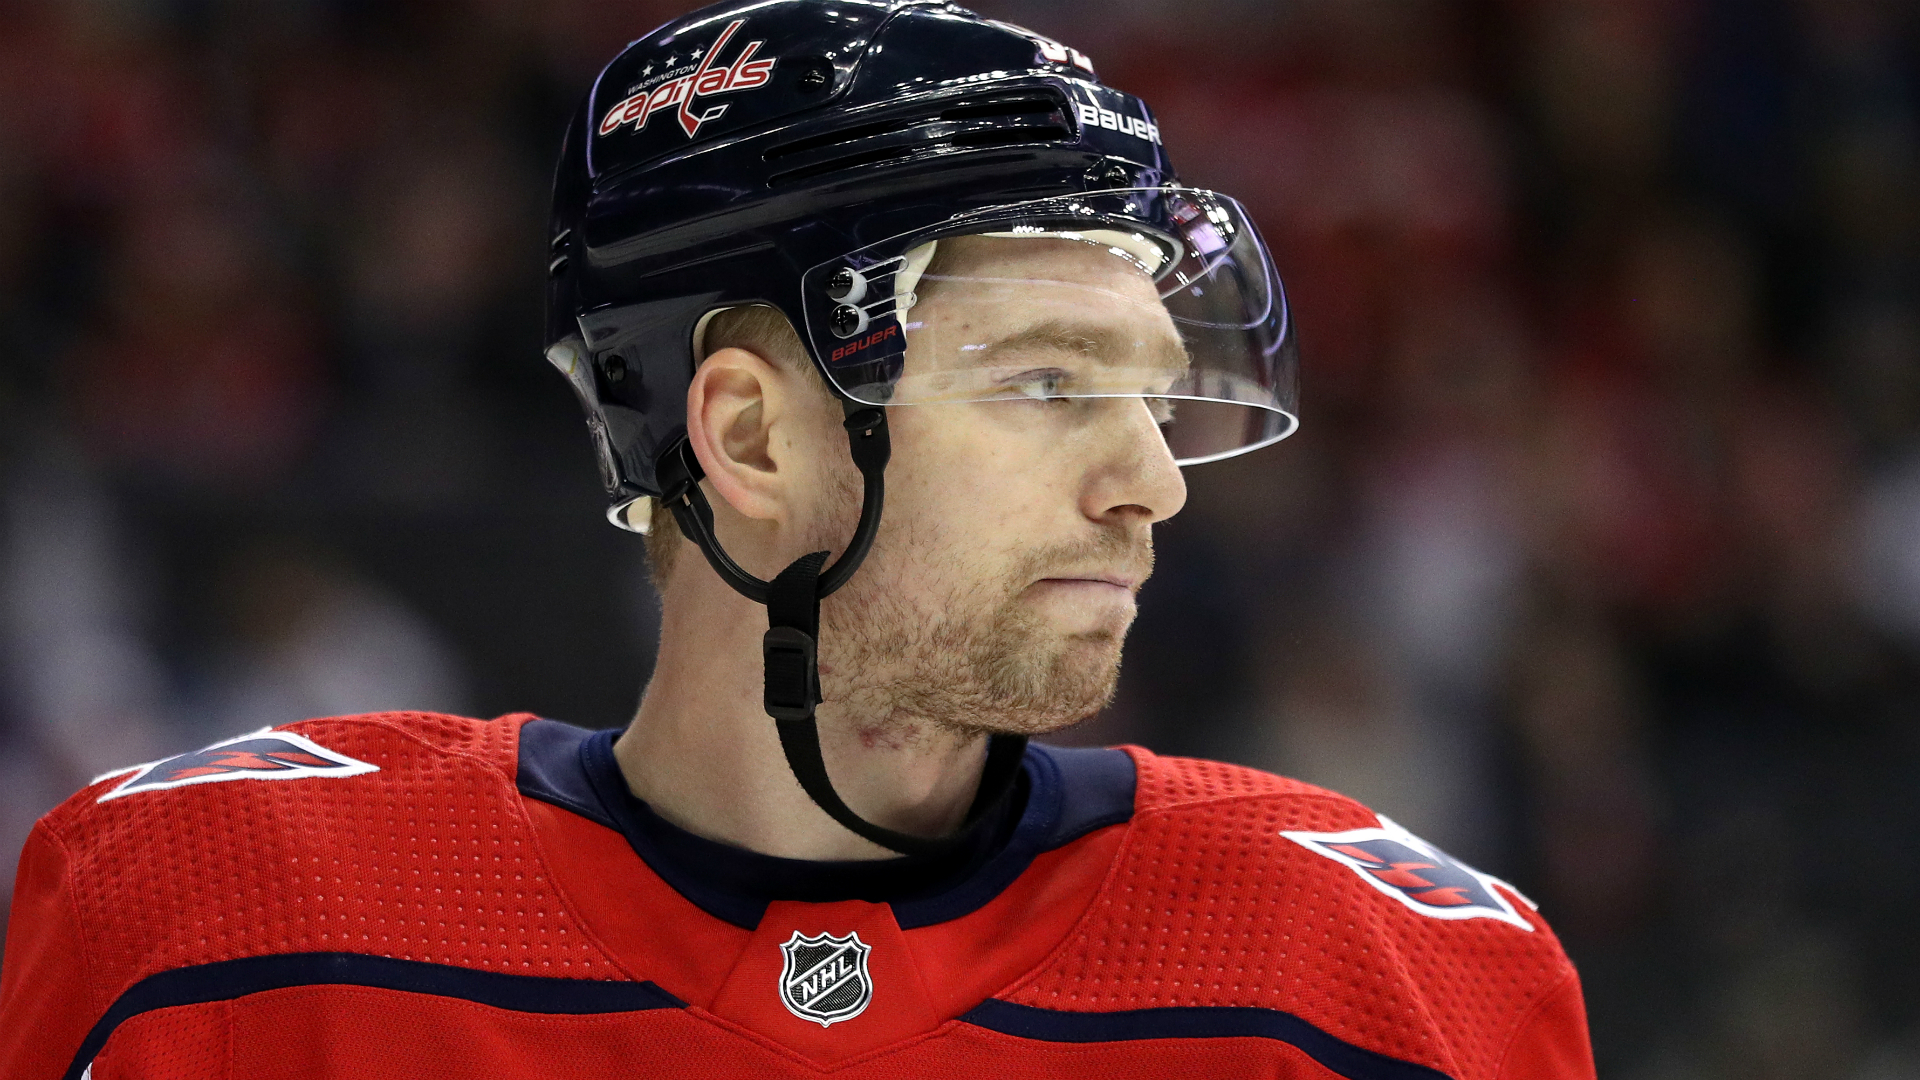 Capitals rally behind Evgeny Kuznetsov: 'Support him and be at his side and don't leave him alone'